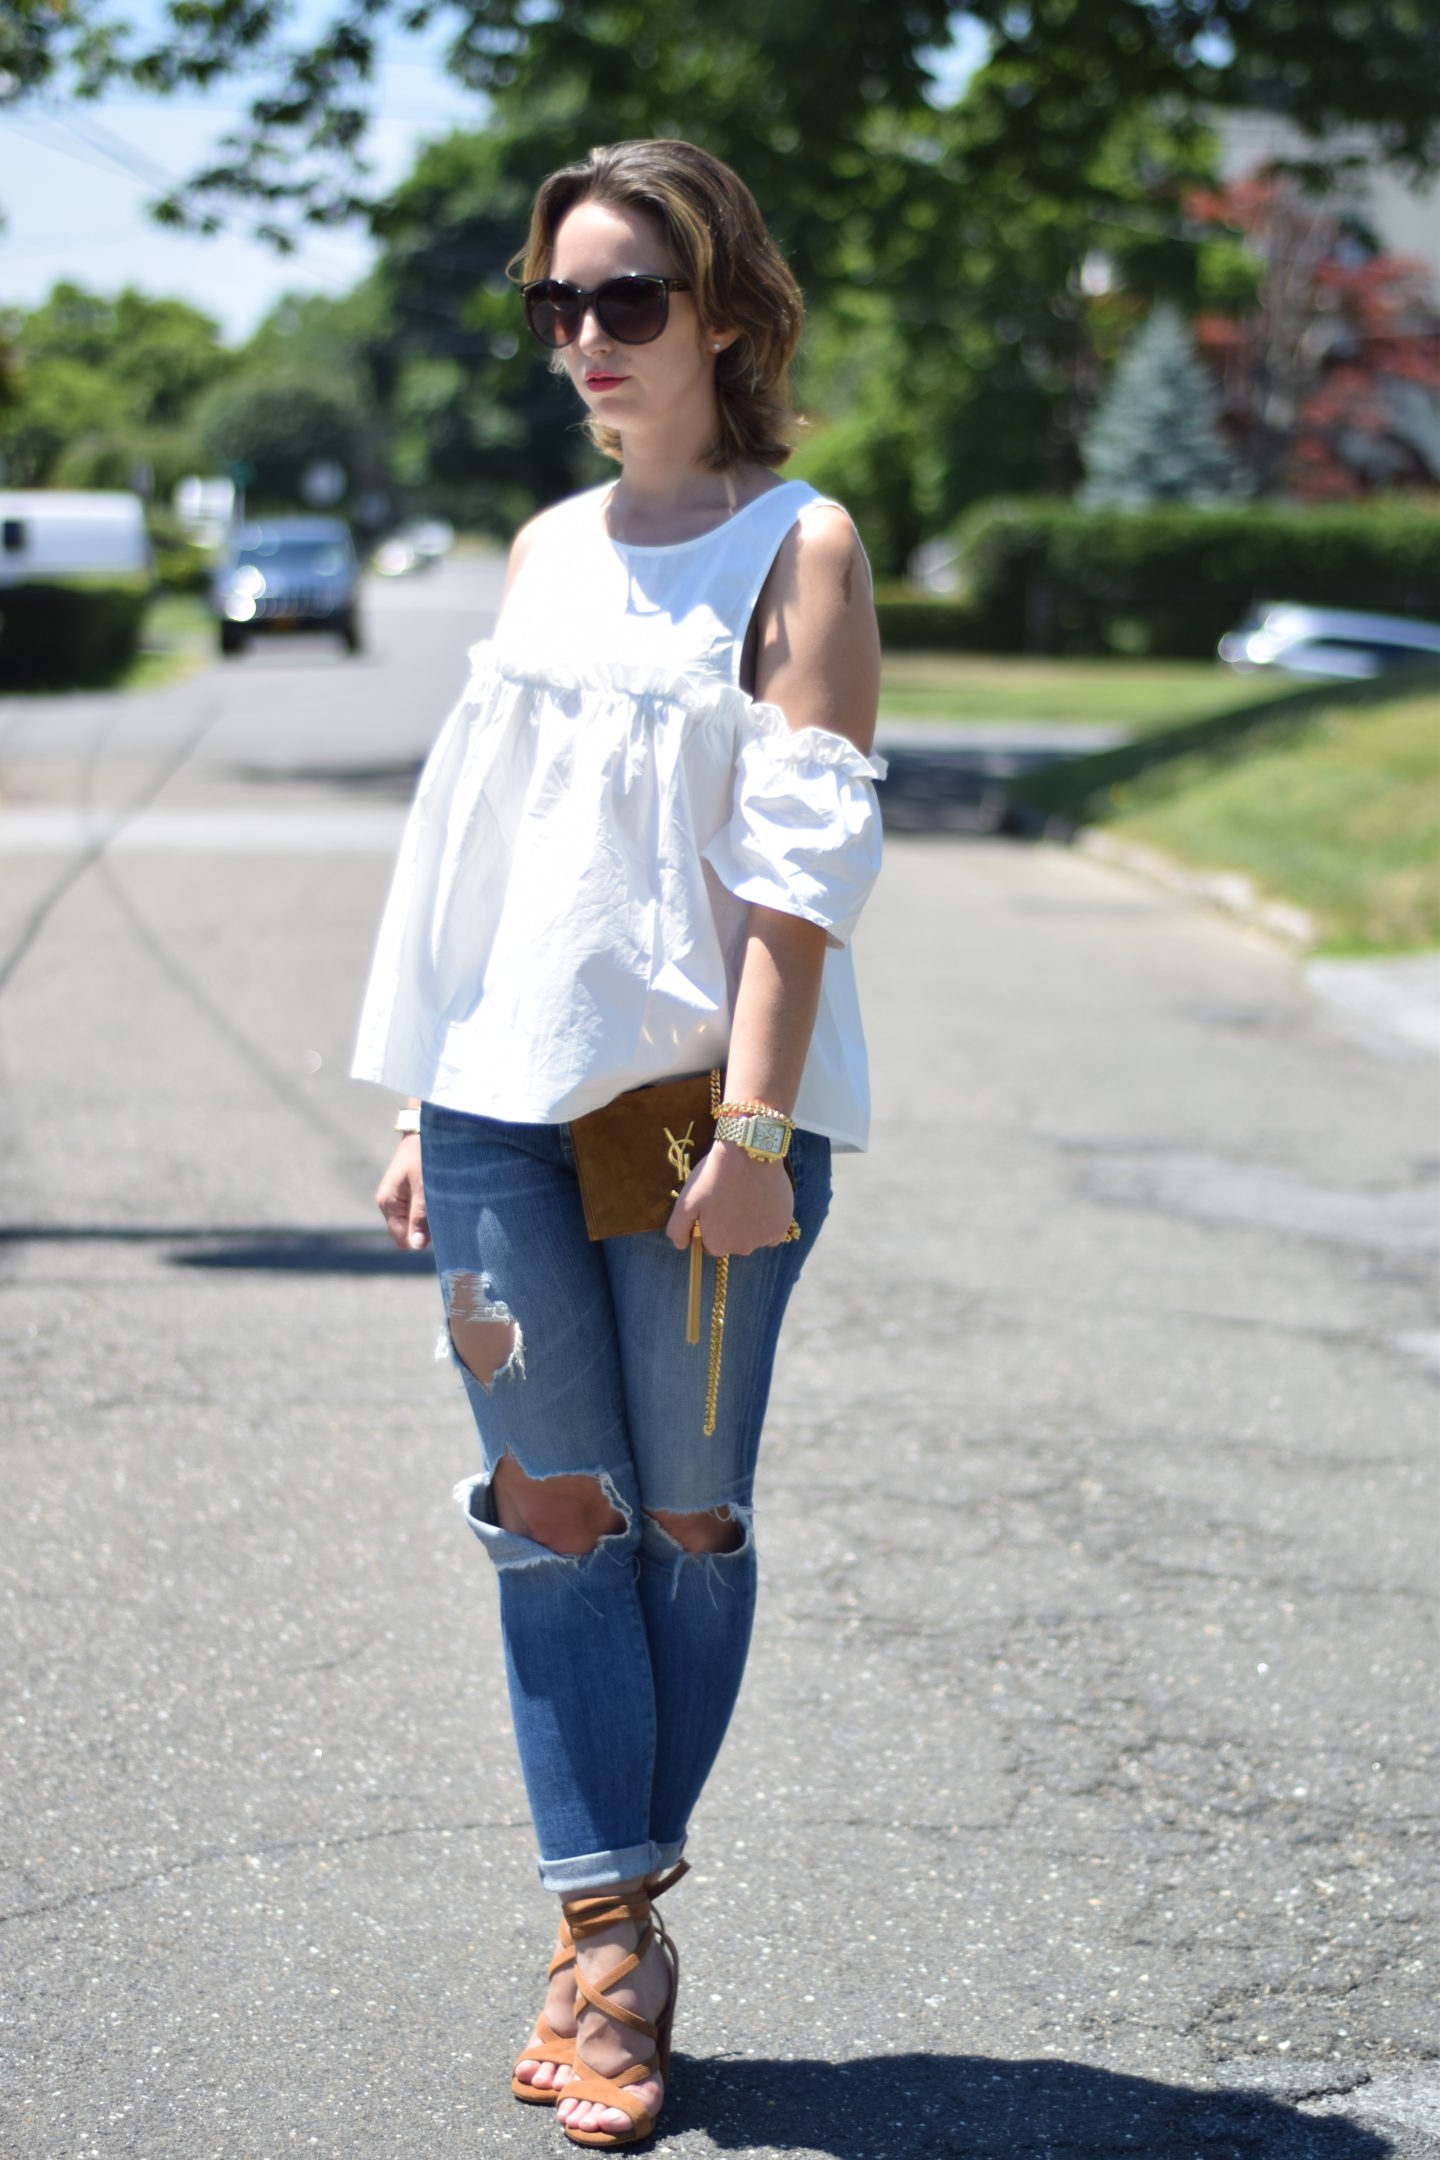 shein-cold shoulder-outfit-style